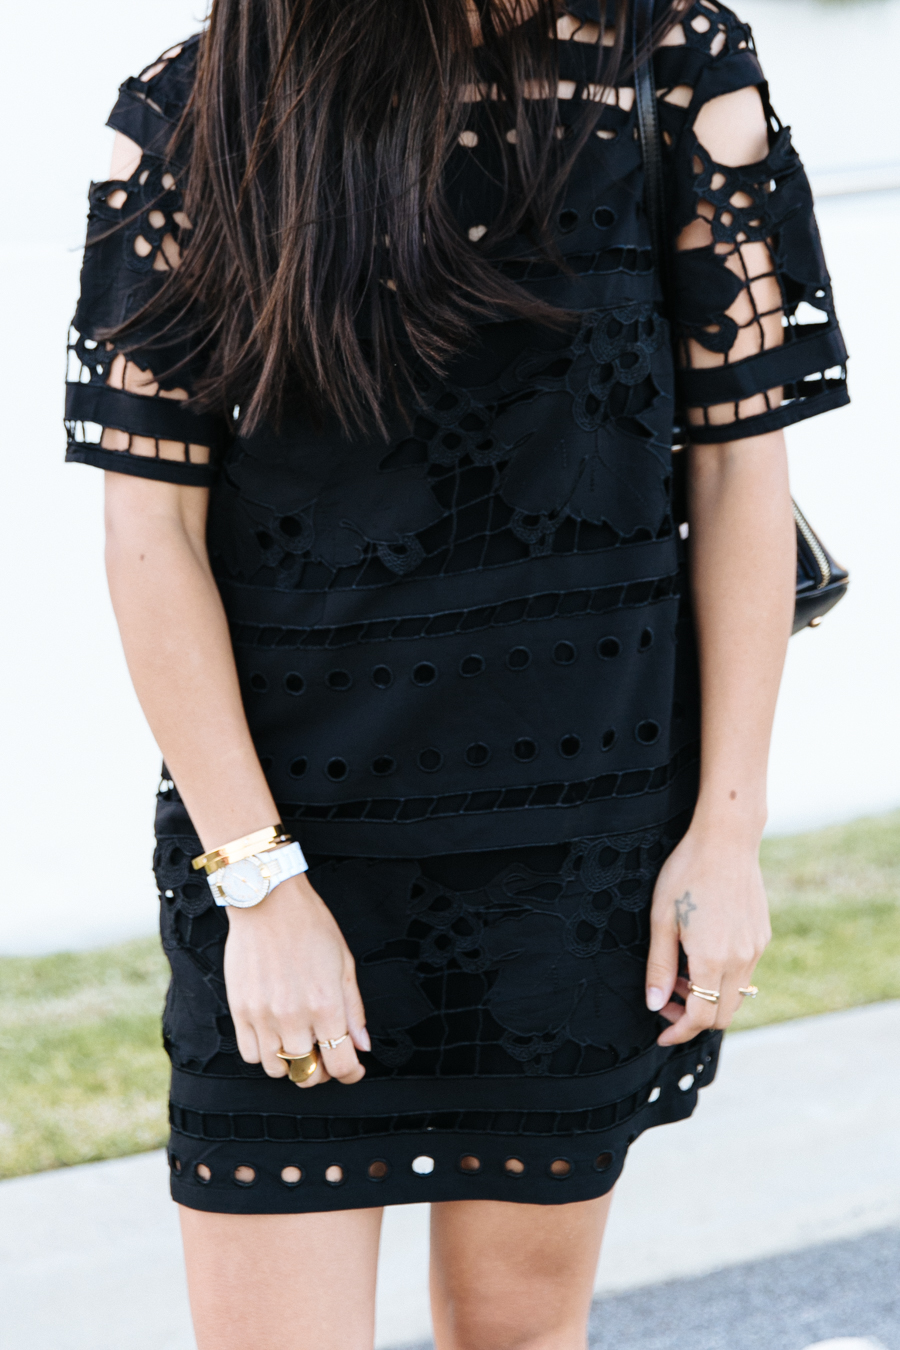 Lasers cut black lace dress from Alice McCall.